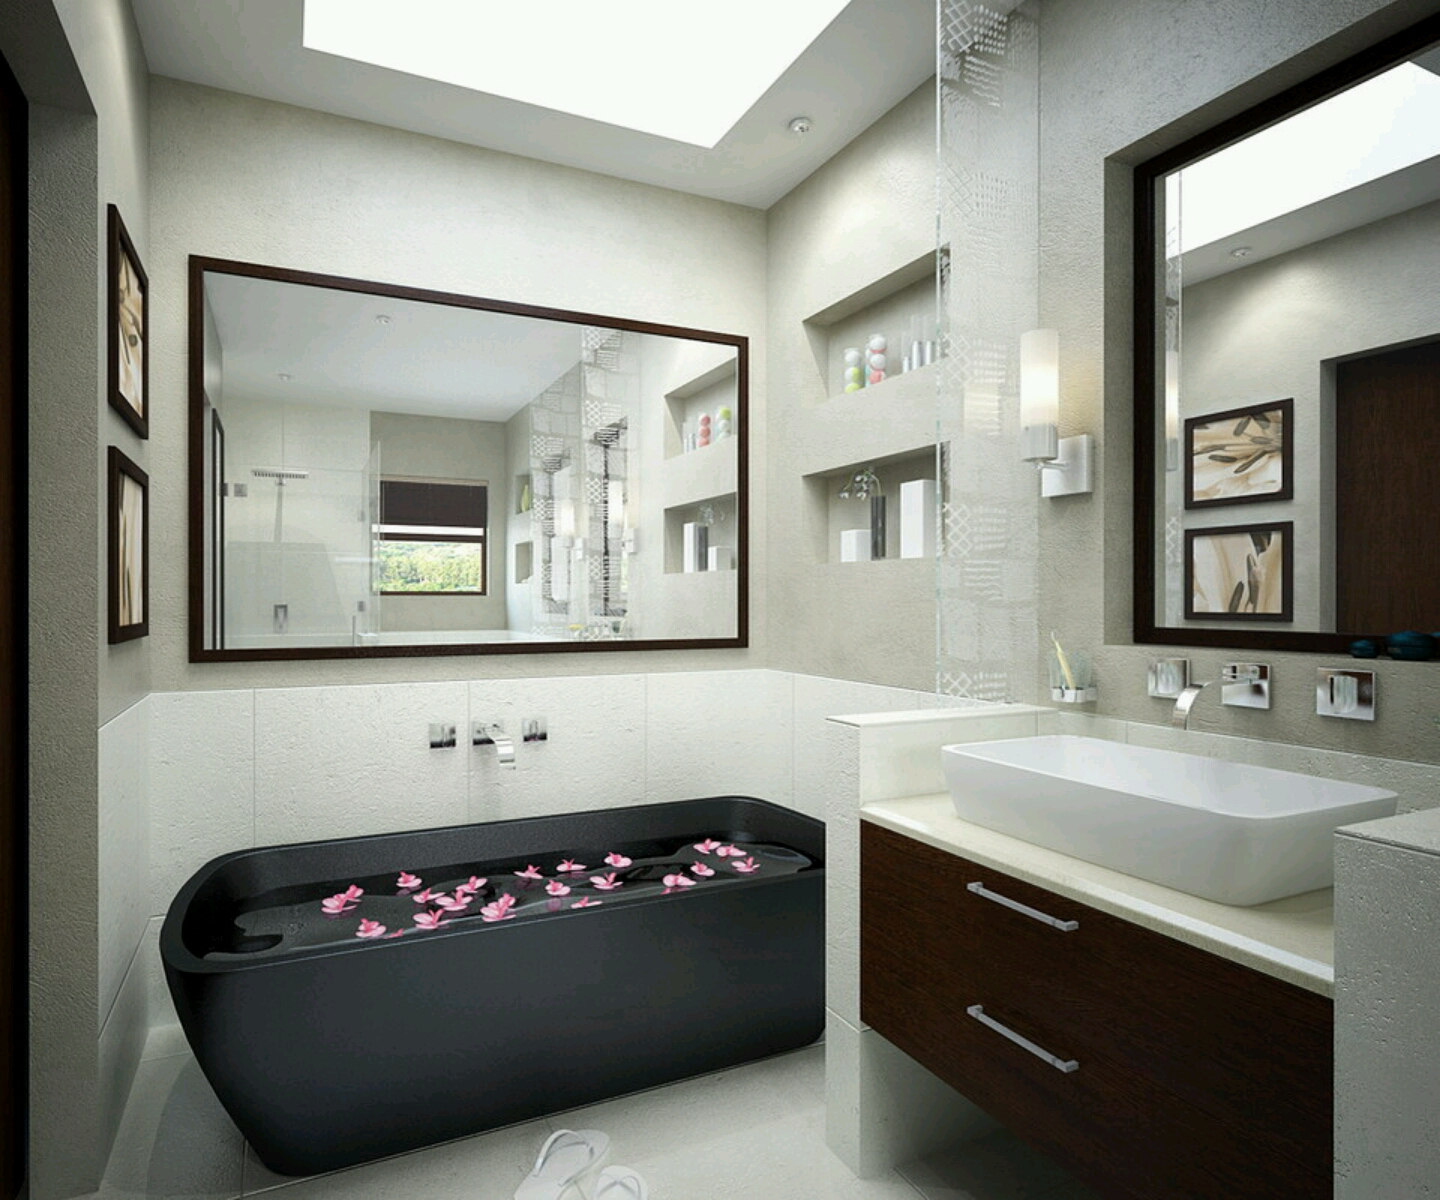 Modern bathrooms cabinets designs furniture gallery for Modern bathroom